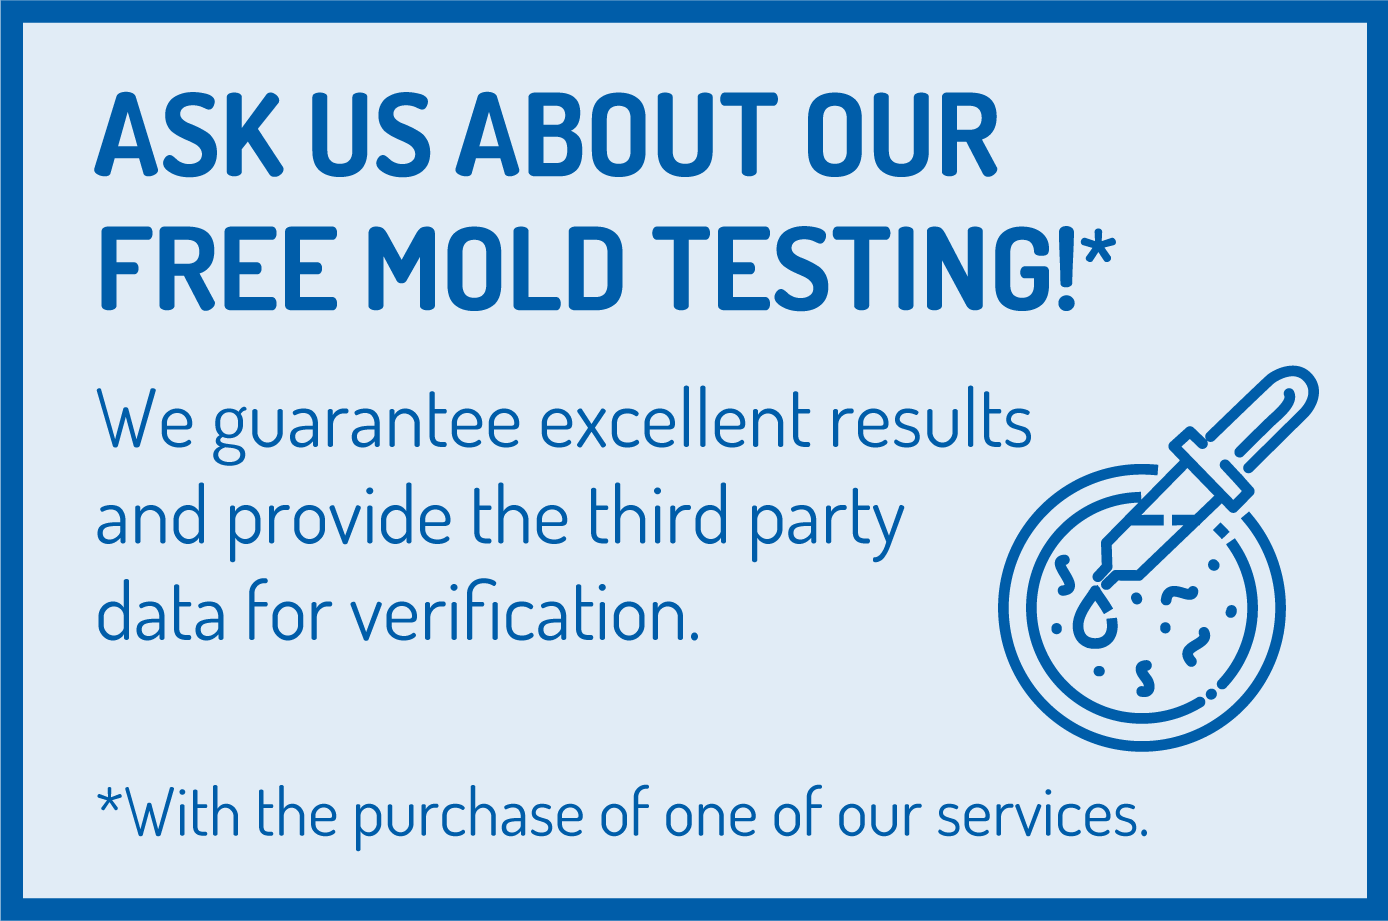 Ask us about free mold testing